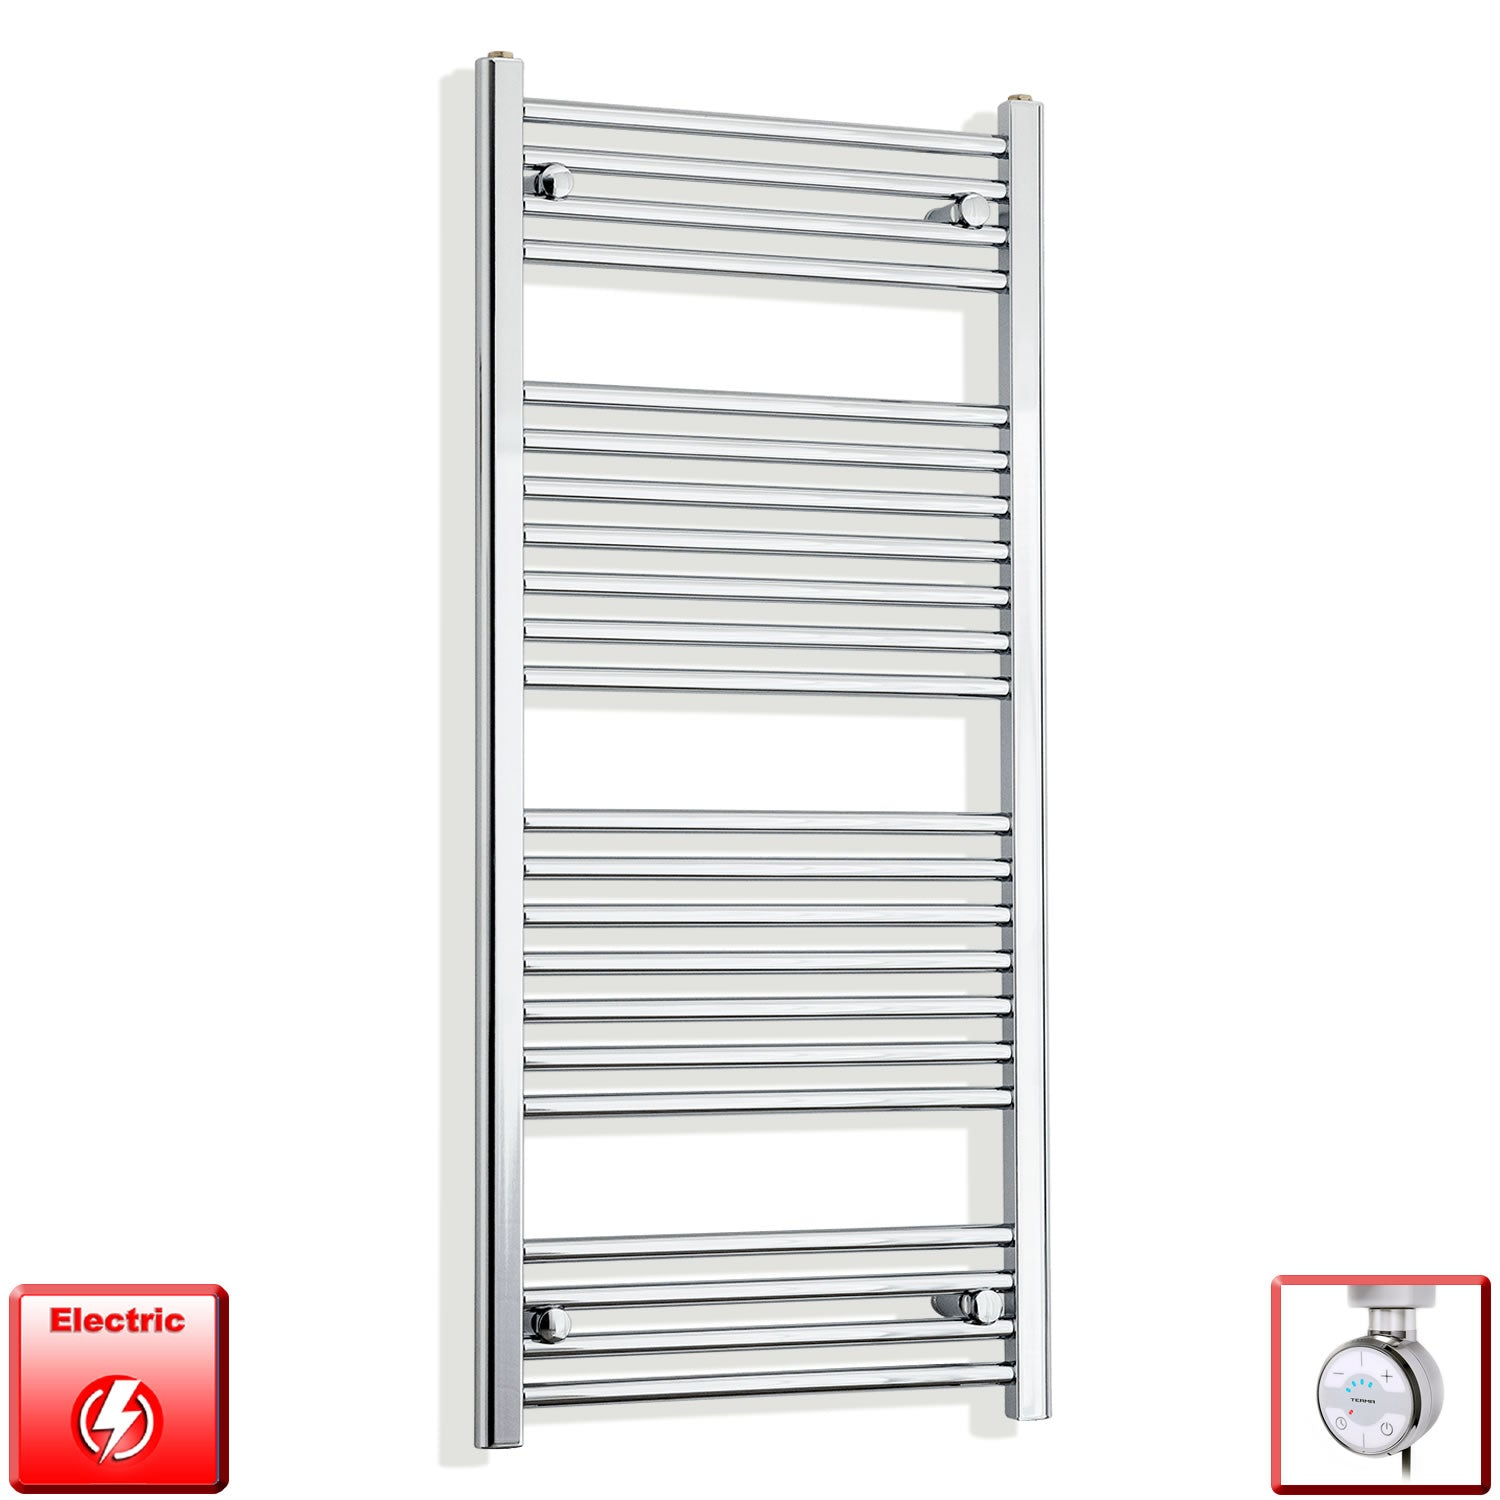 600mm Wide 1200mm High Flat Chrome Pre-Filled Electric Heated Towel Rail Radiator HTR,MOA Thermostatic Element